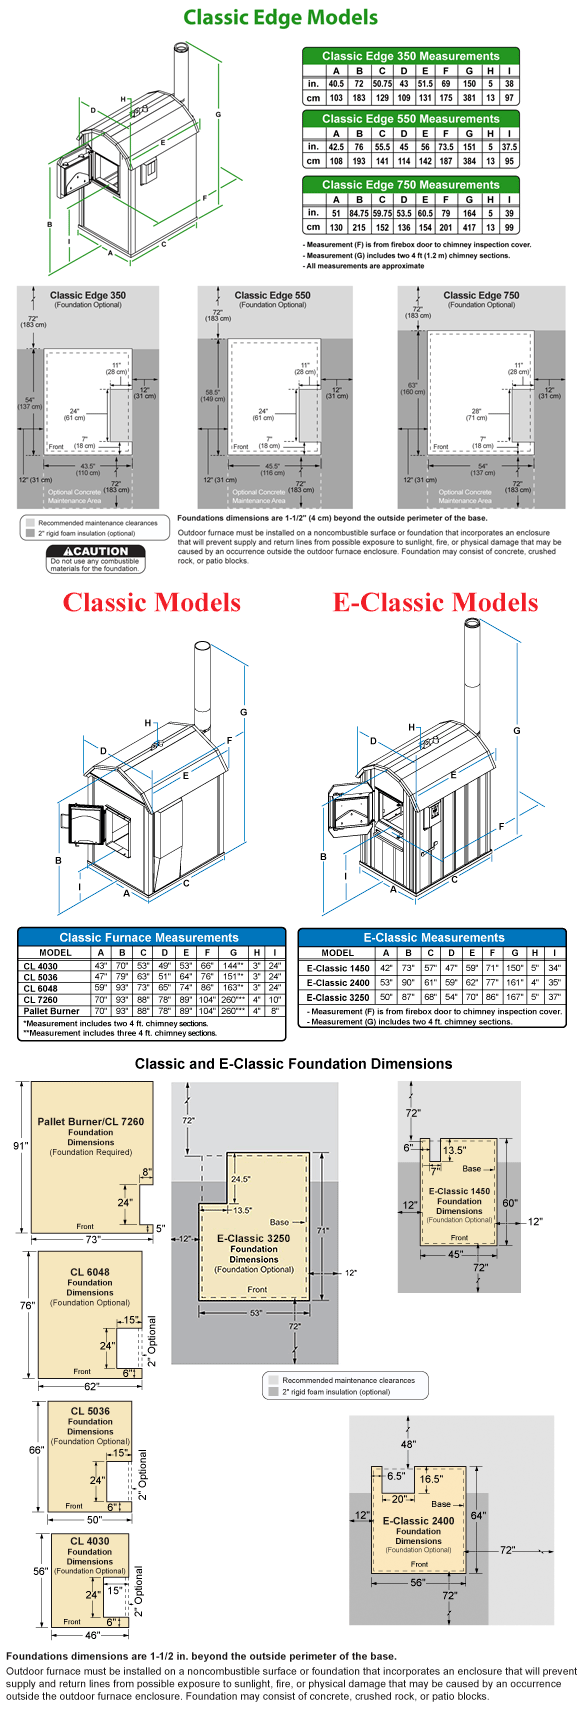 Coleman Echelon Furnace Wiring Diagram 38 Images Dgaa077bdta Evcon Model Dimensions Foundations 4030b Diagrams At